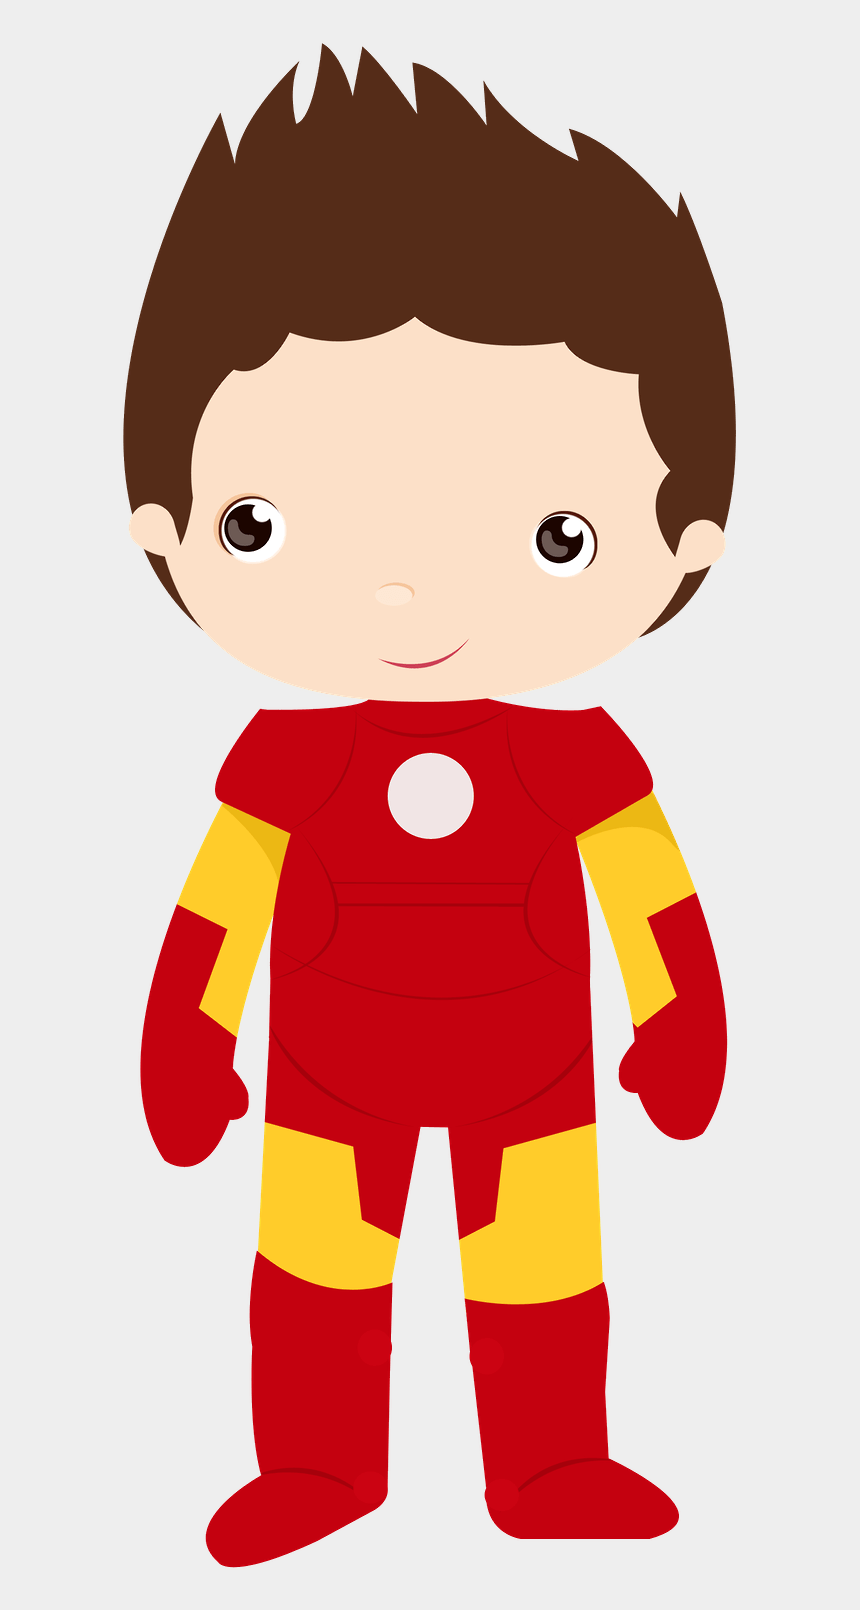 clipart.com, Cartoons - Cute Avengers Clipart - Superhero Iron Man Clipart